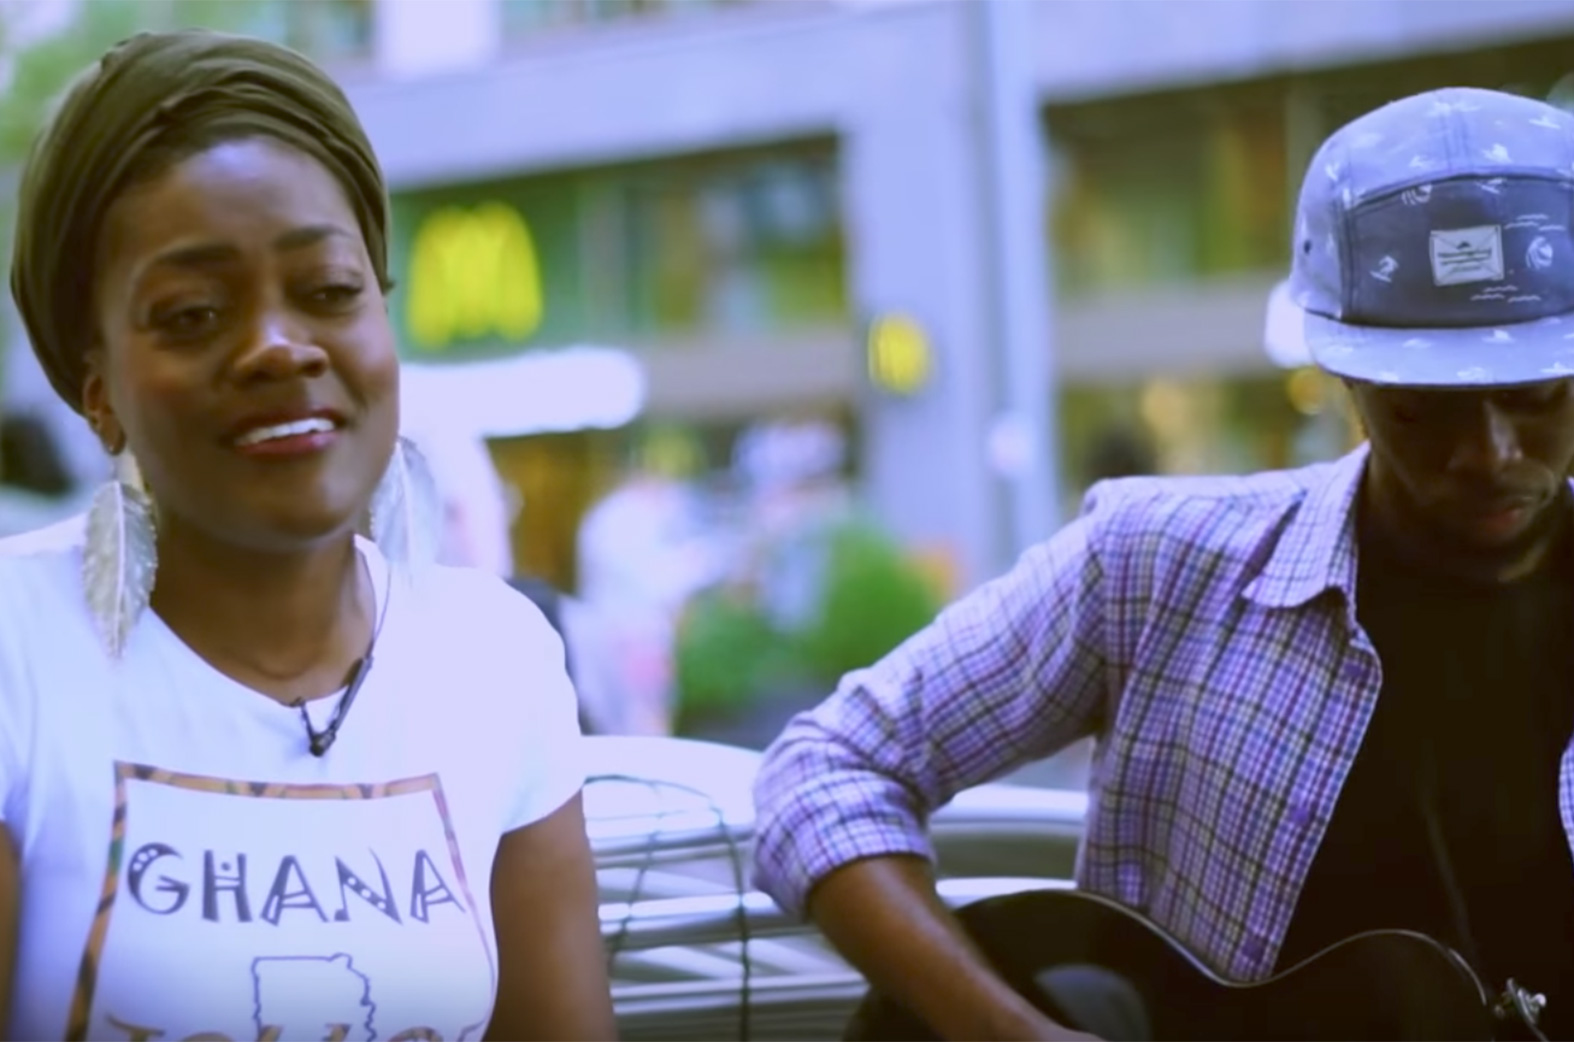 Soulful version of Fall (Davido cover) by MS.ABA feat. Kyekyeku & Nii Teii